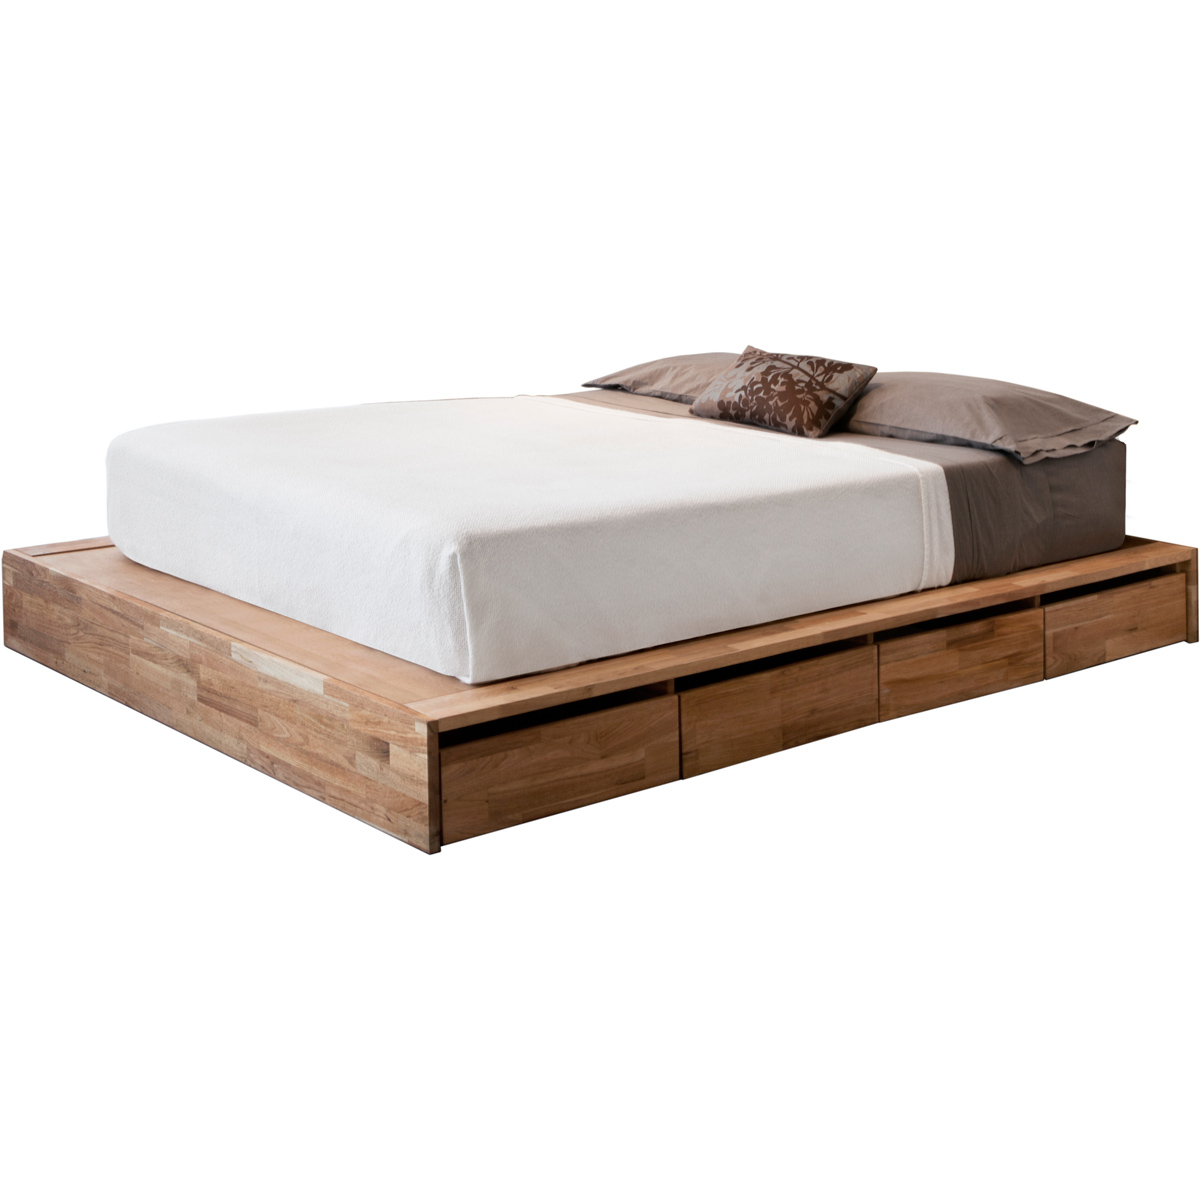 Lax Platform Bed W Storage Ikea Platform Bed Bed Frame With